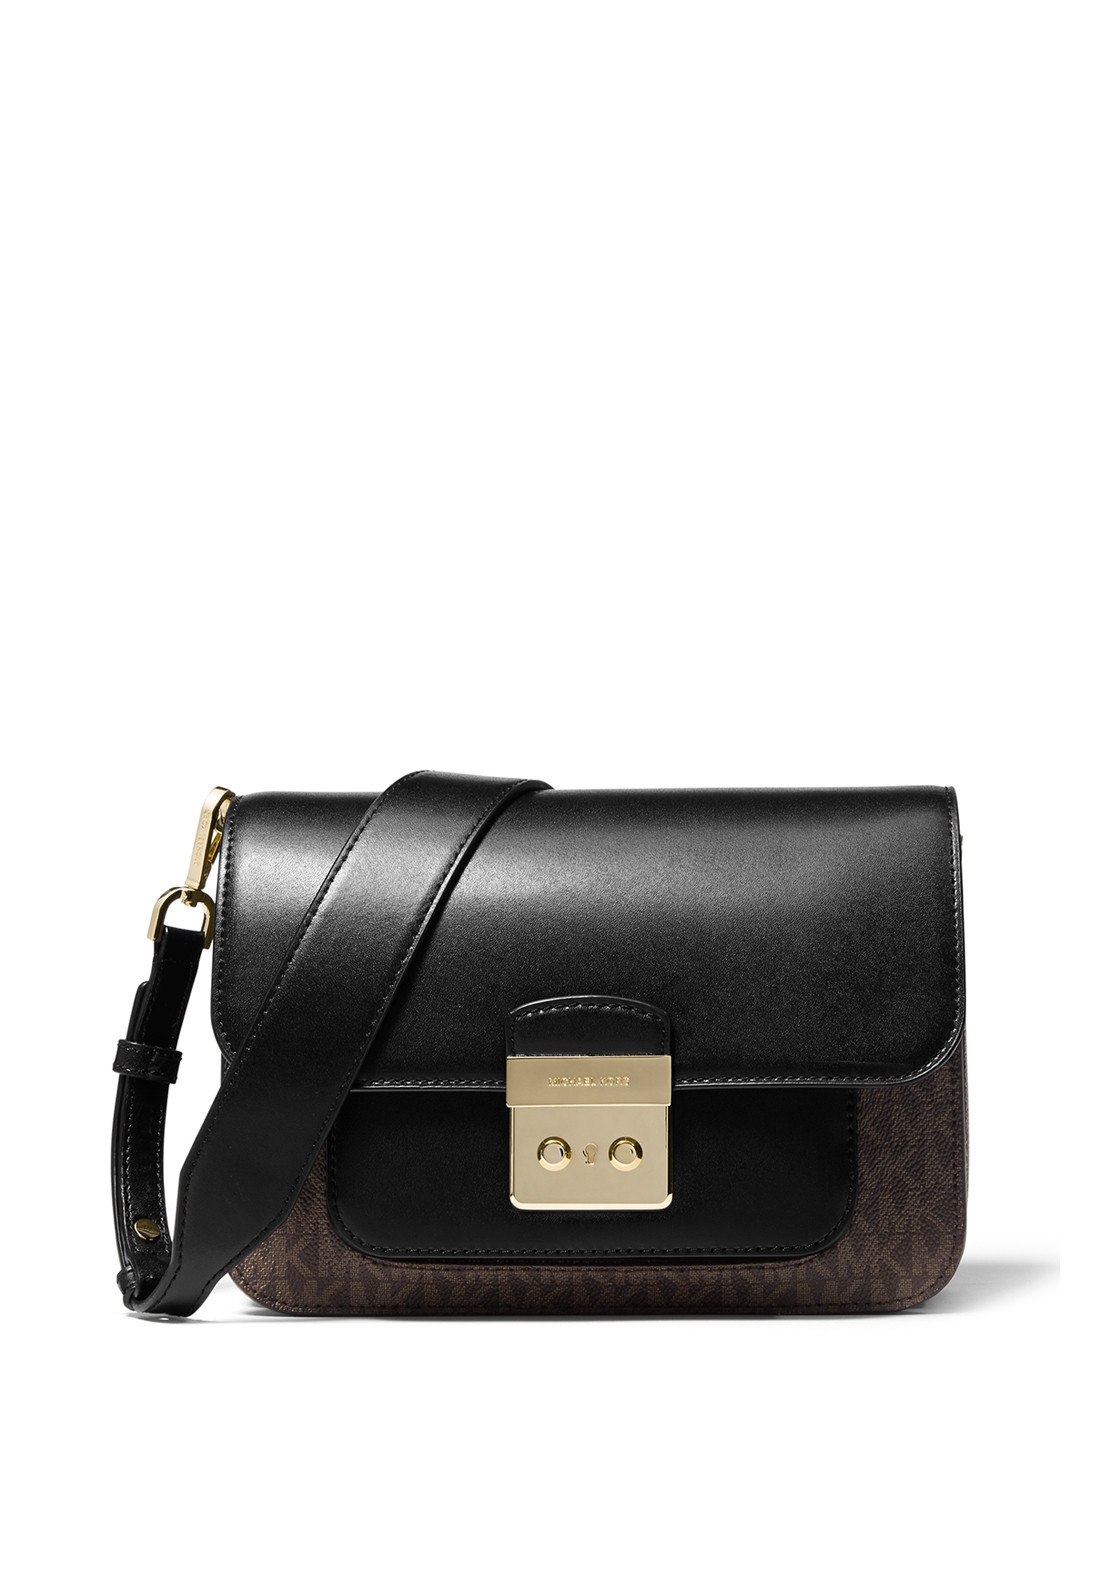 2eb68c58867b MICHAEL Michael Kors Sloan Editor Logo Shoulder Bag Brown/Black. Be the  first to review this product